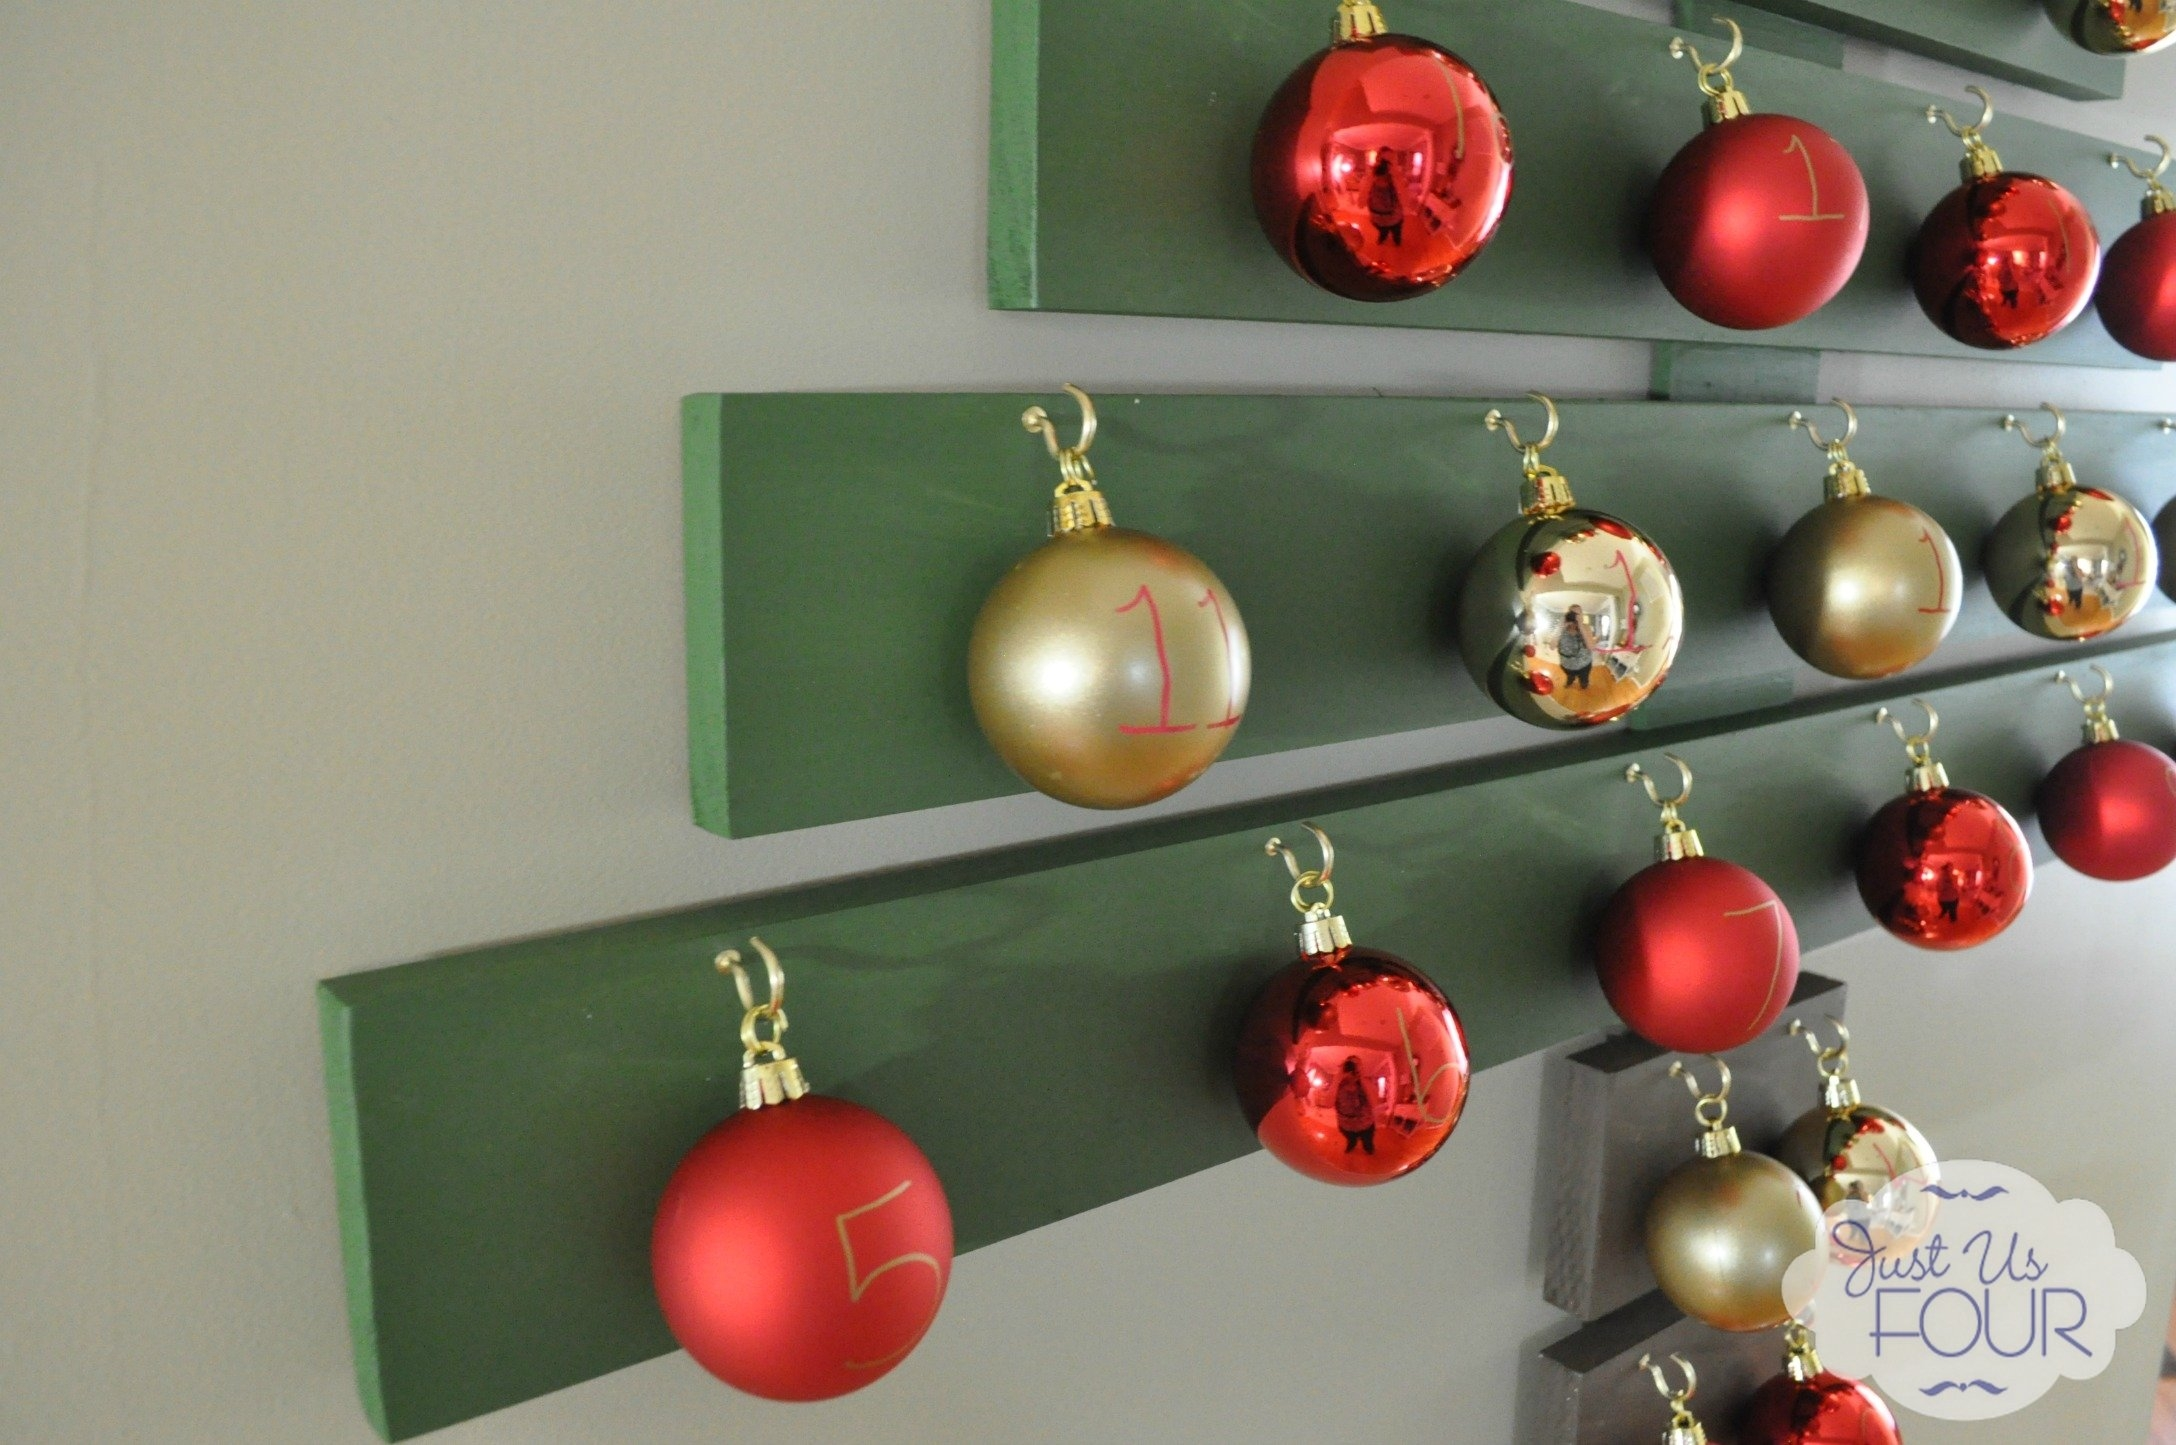 Wall Decorations For Christmas Part - 24: DIY | DIY Wall Decorations For Christmas U2013 Idea # 7